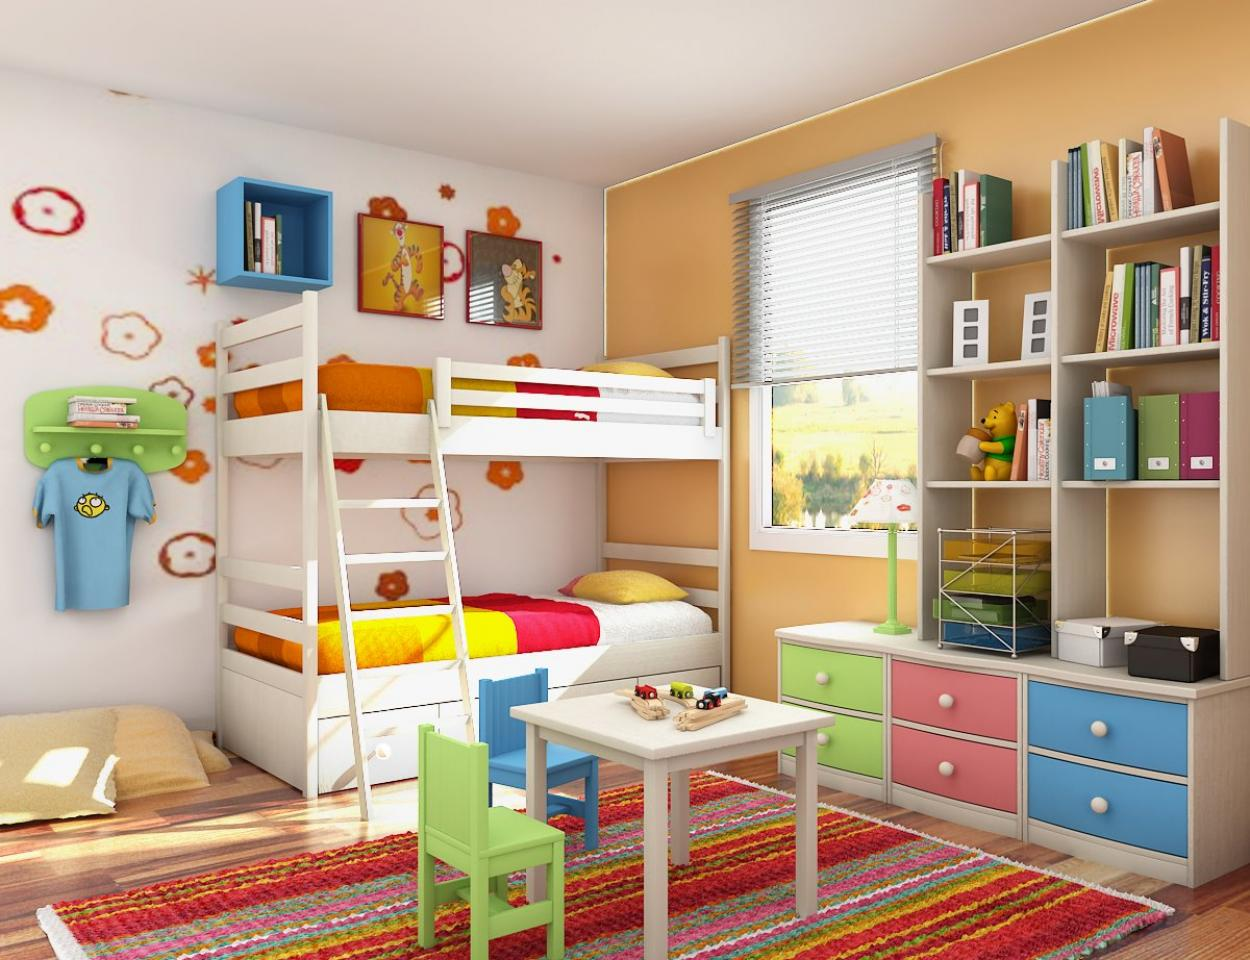 beauty-colors-theme-for-interior-design-bedroom-for-boys-and-girls